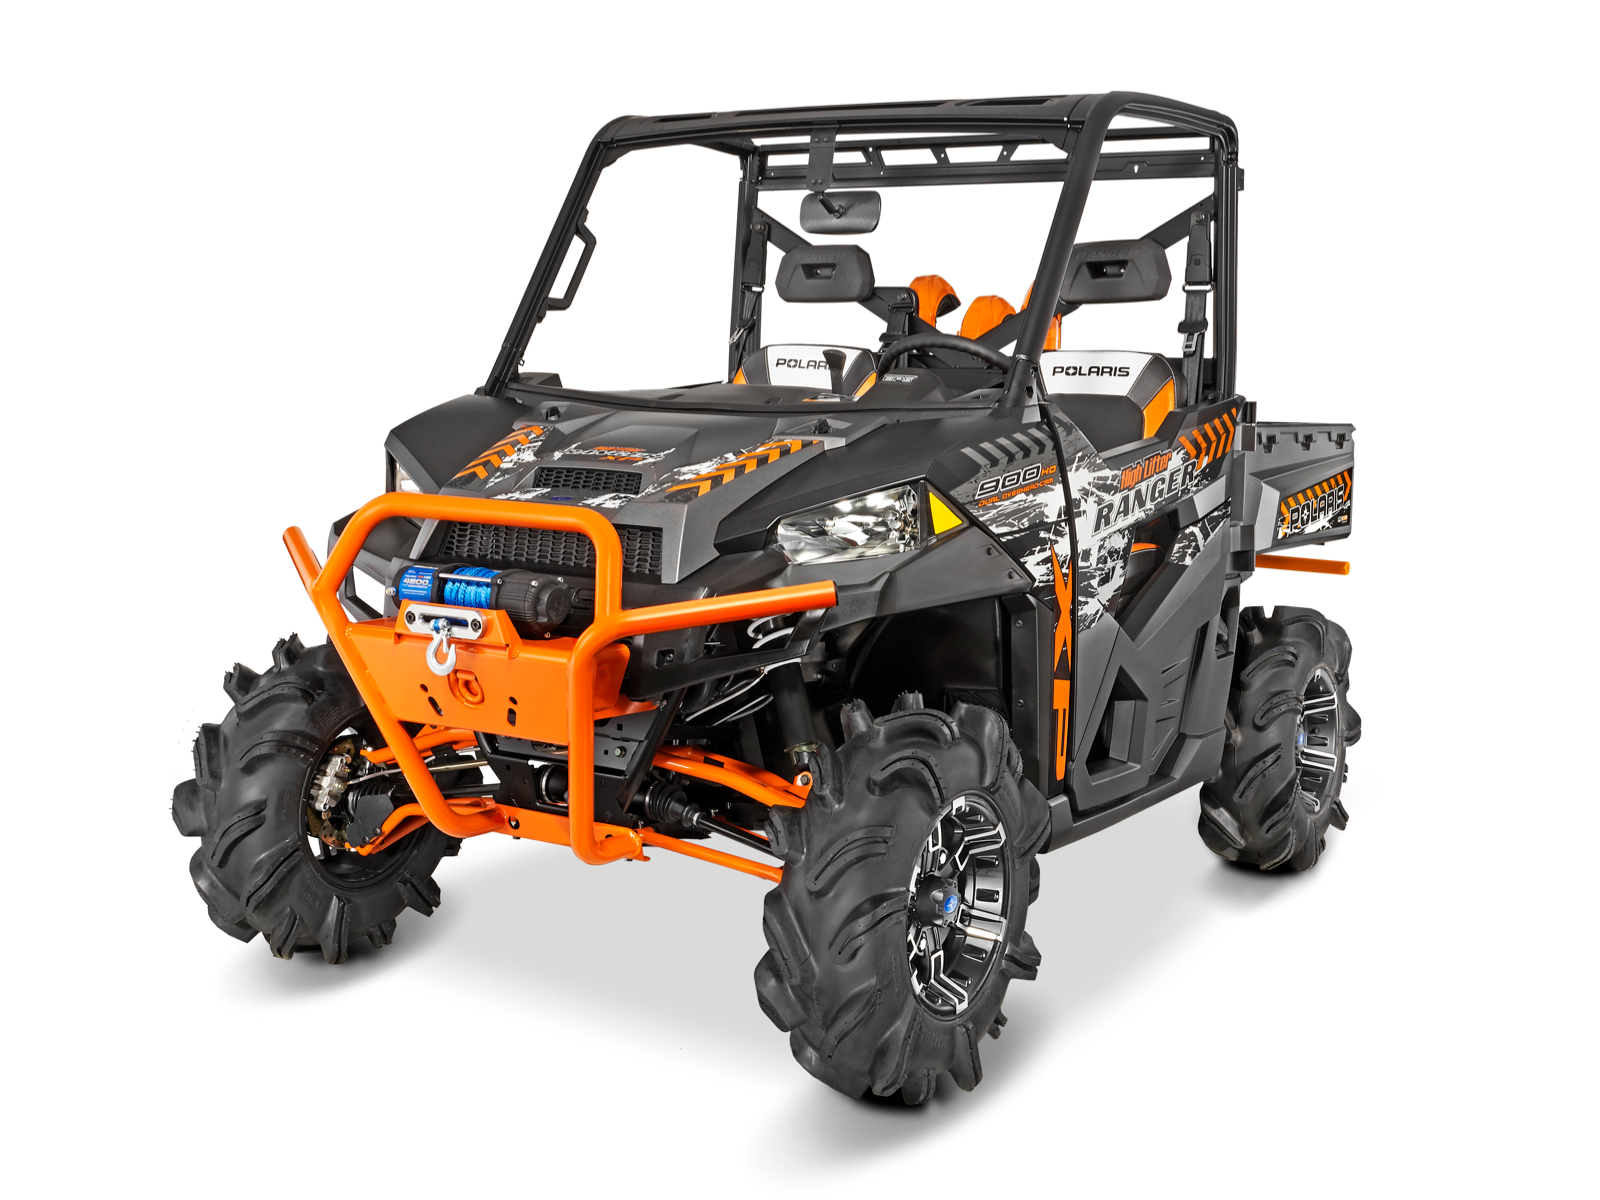 Polaris Ranger Xp 900 >> 2017 Ranger Xp 900 Eps High Lifter 4x4 Vanhemmat Mallit